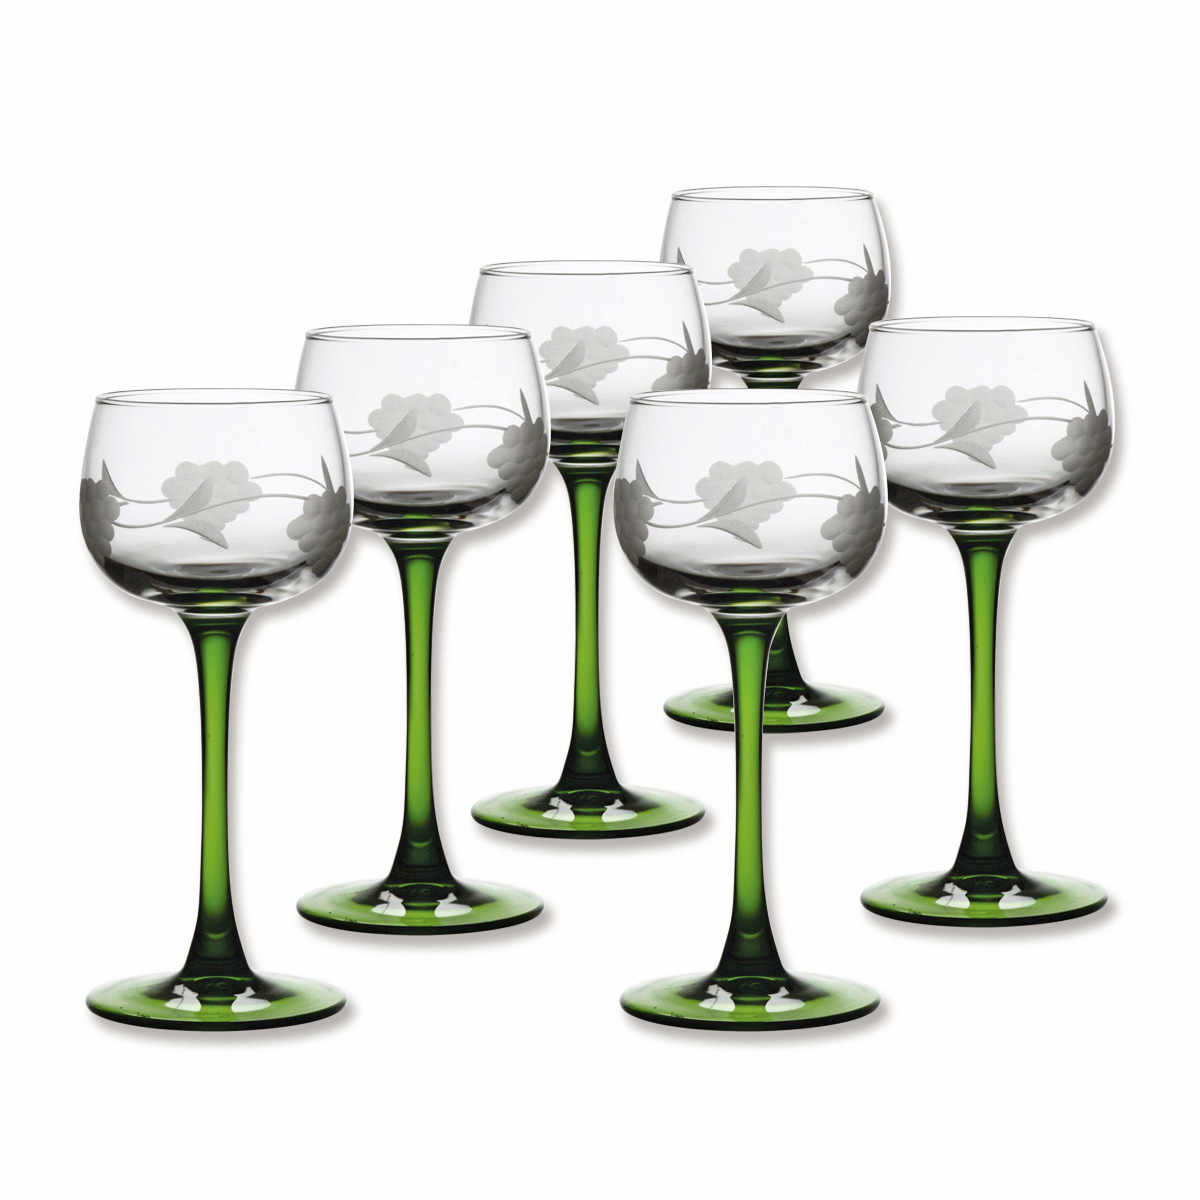 verre vin d 39 alsace verres grav s pied vert bruno. Black Bedroom Furniture Sets. Home Design Ideas